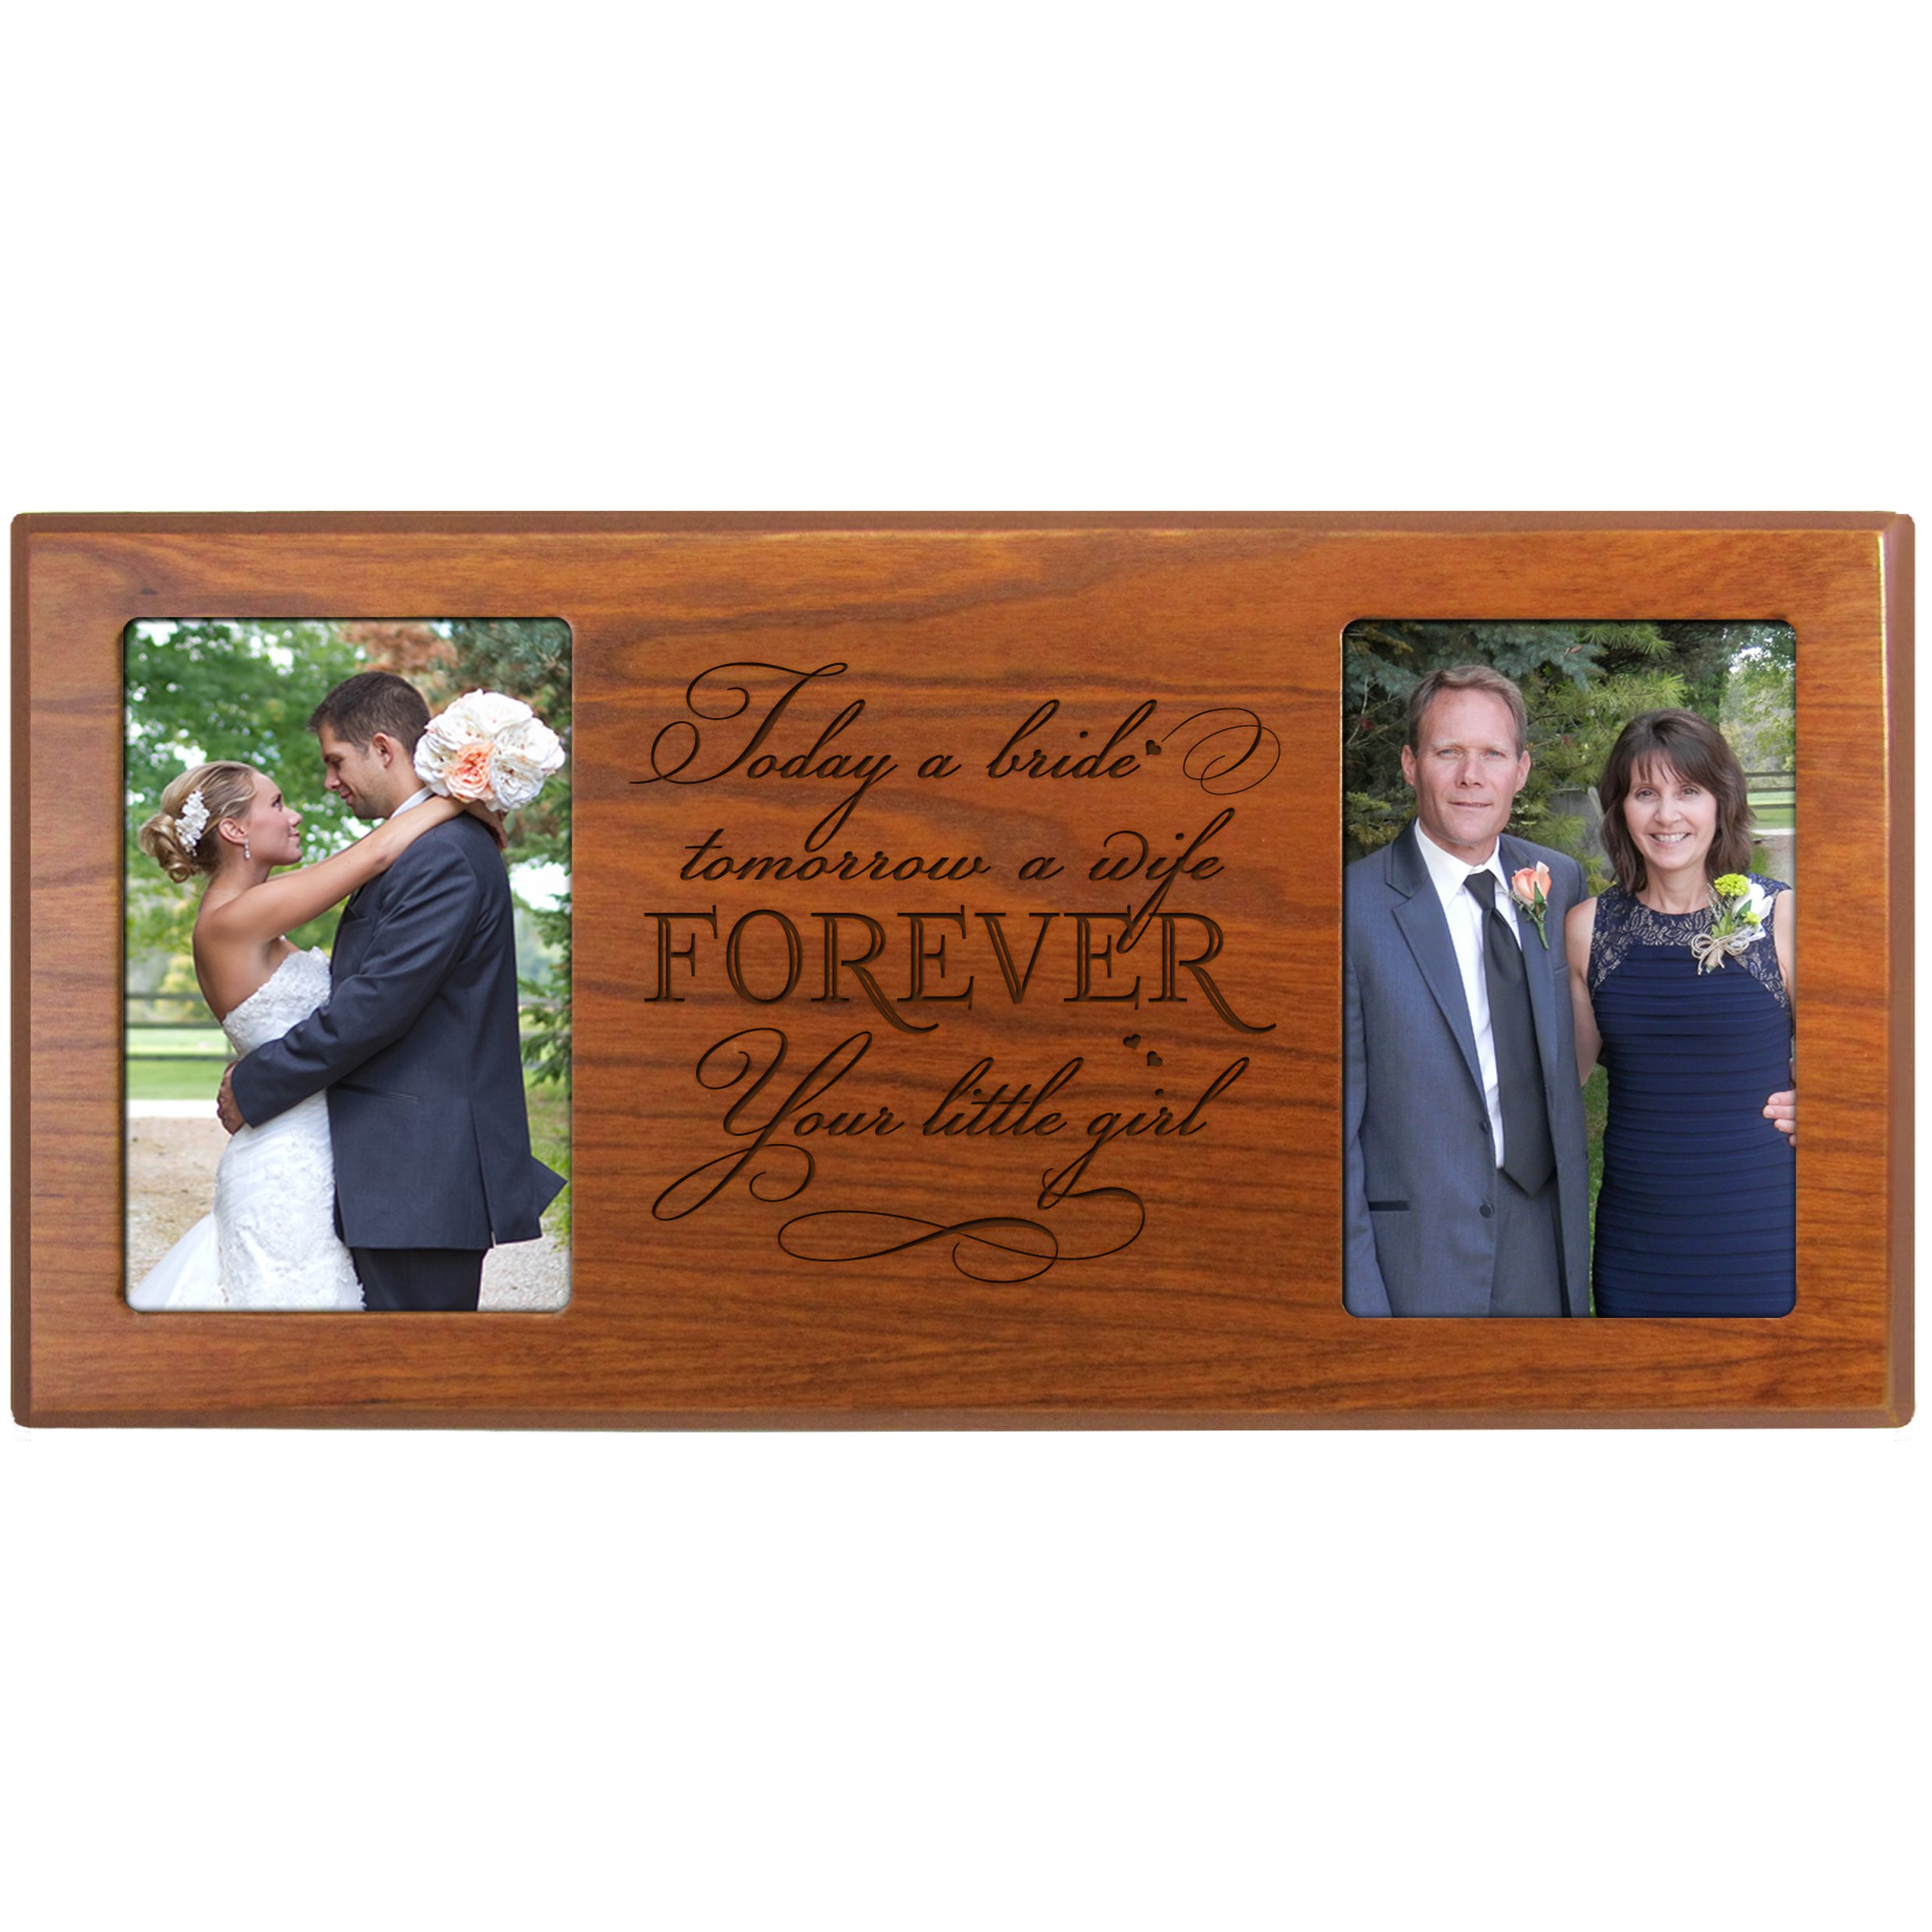 Parent Wedding Photo Frame picture frame gift for Bride and Groom, Mom and Dad thank-you gift '' Today a Bride tomorrow a Wife Forever Your little Girl '' Exclusively from LifeSong Milestones (Cherry)